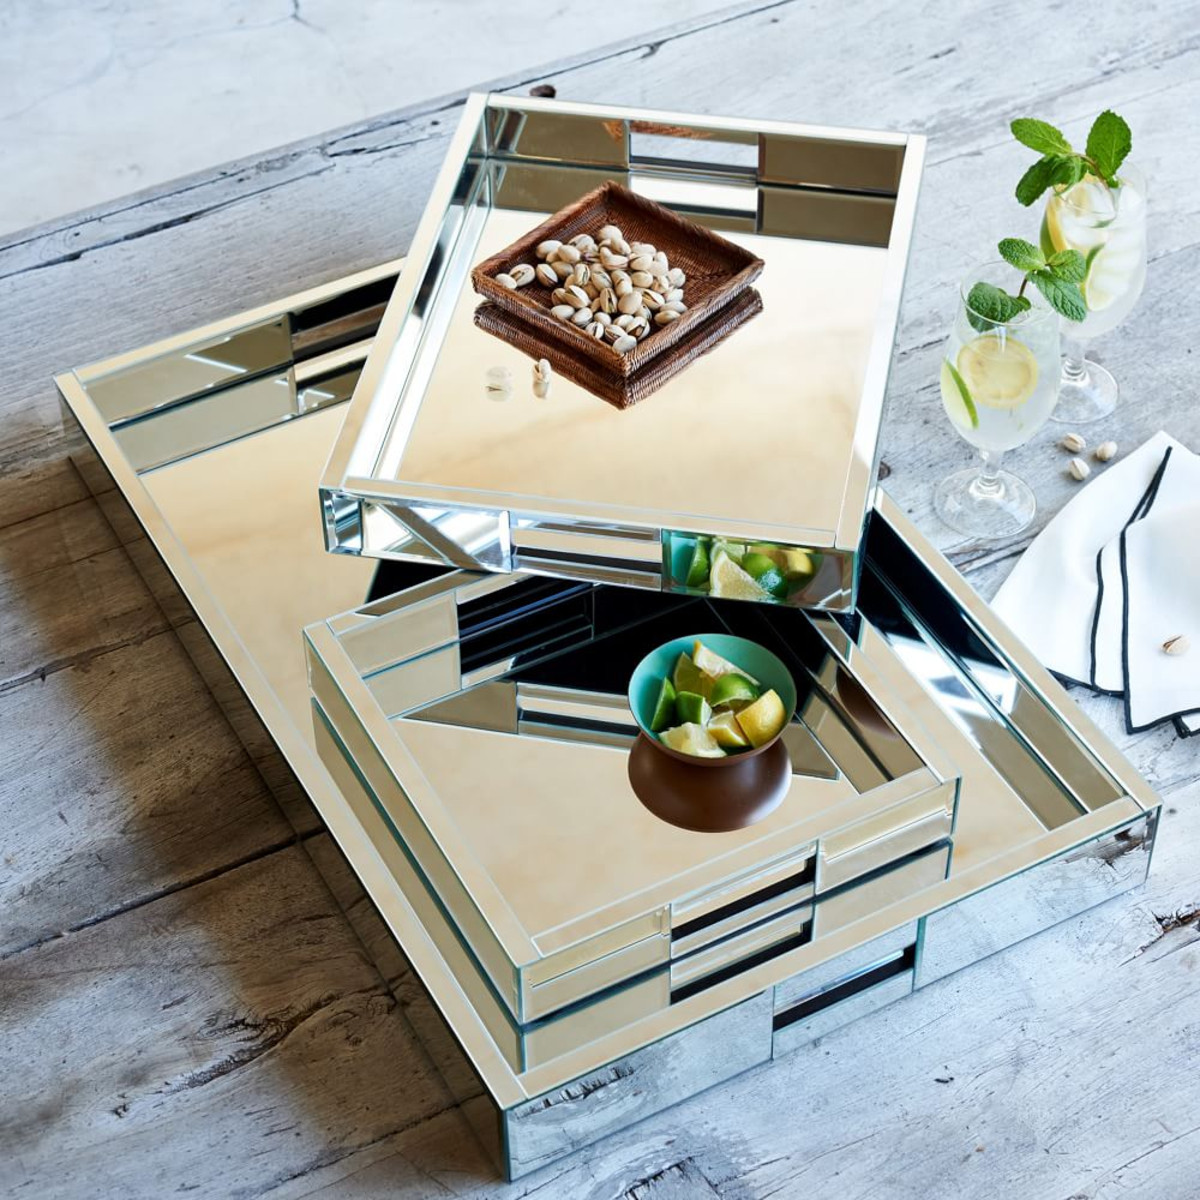 Perfect Serve 11 Serving Trays To Accessorize Your Kitchen Blender Basil